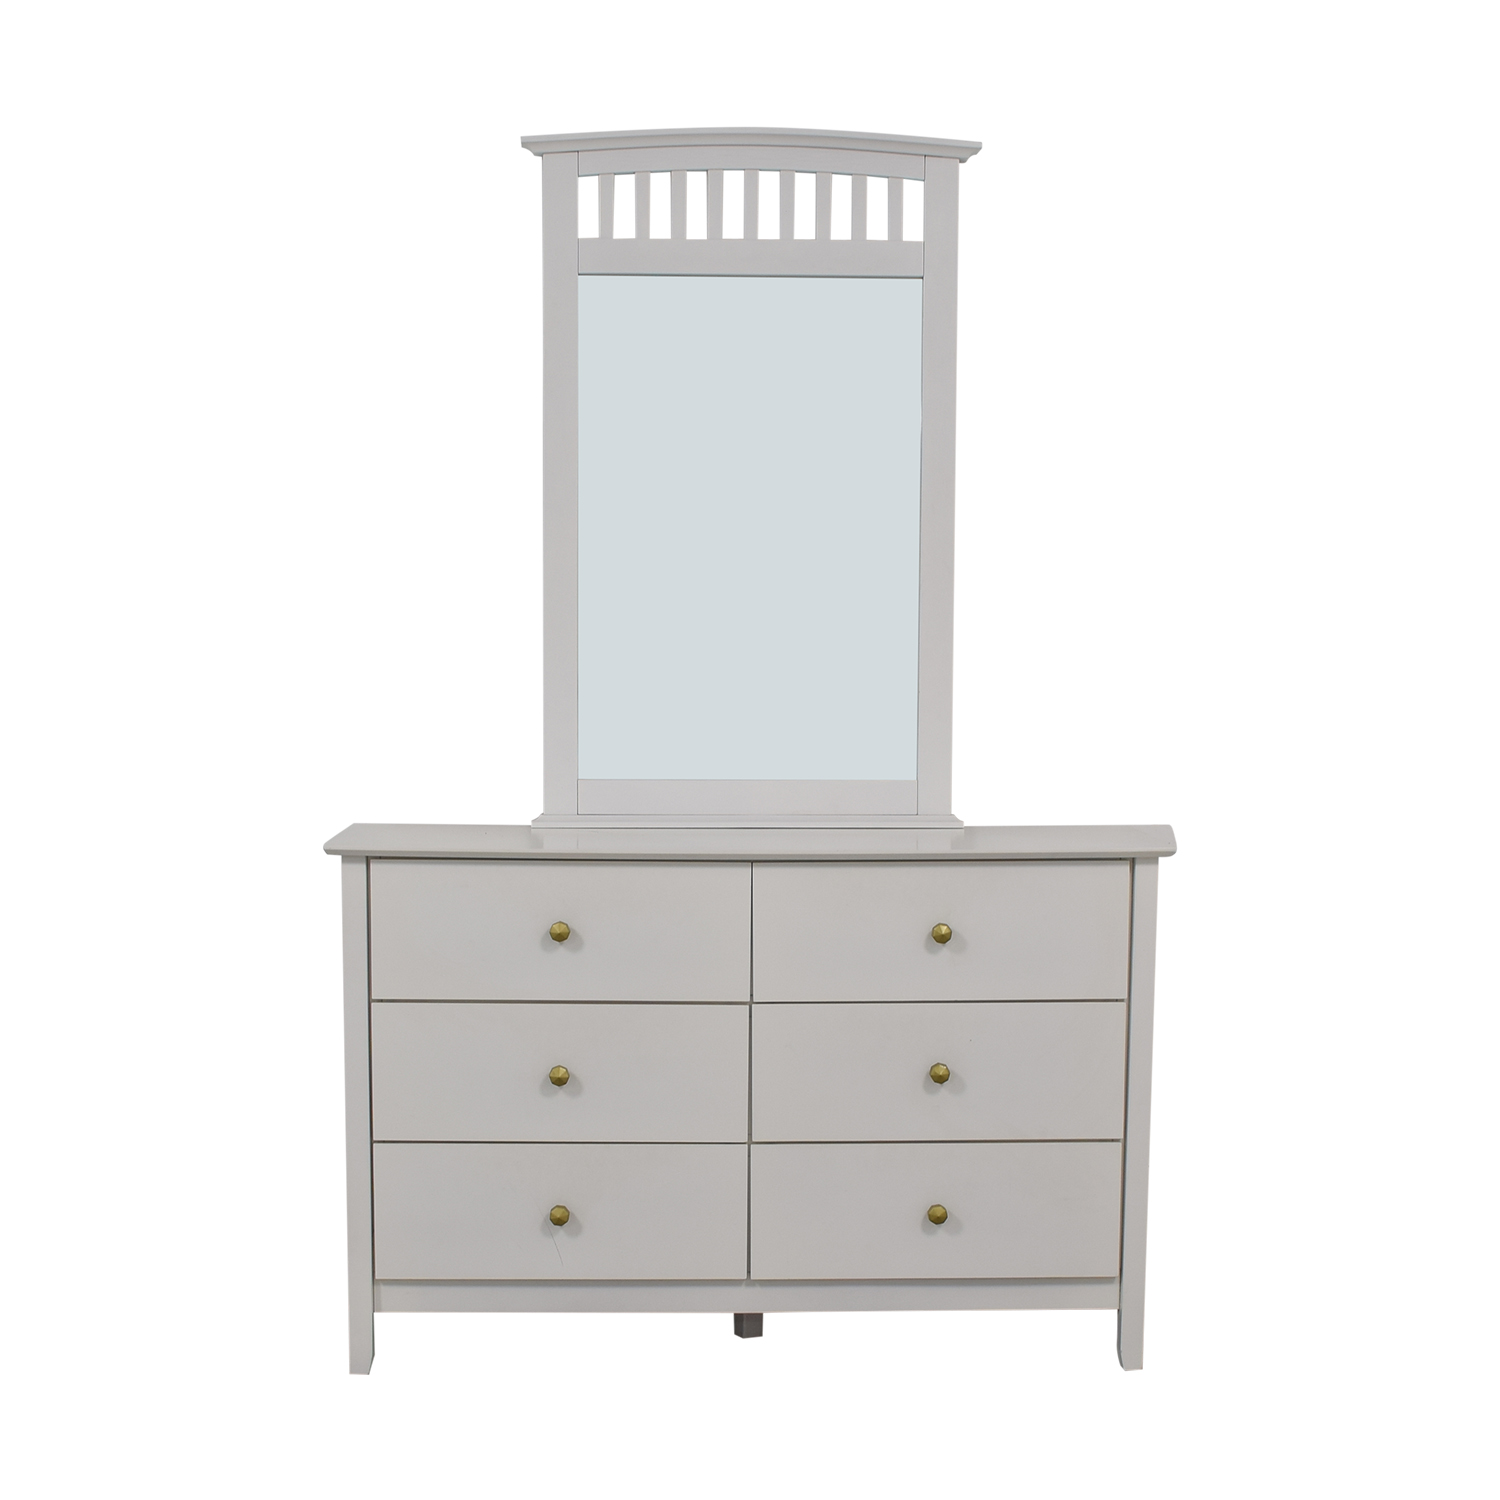 Bob's Discount Furniture White Six-Drawer Dresser with Mirror Bob's Discount Furniture